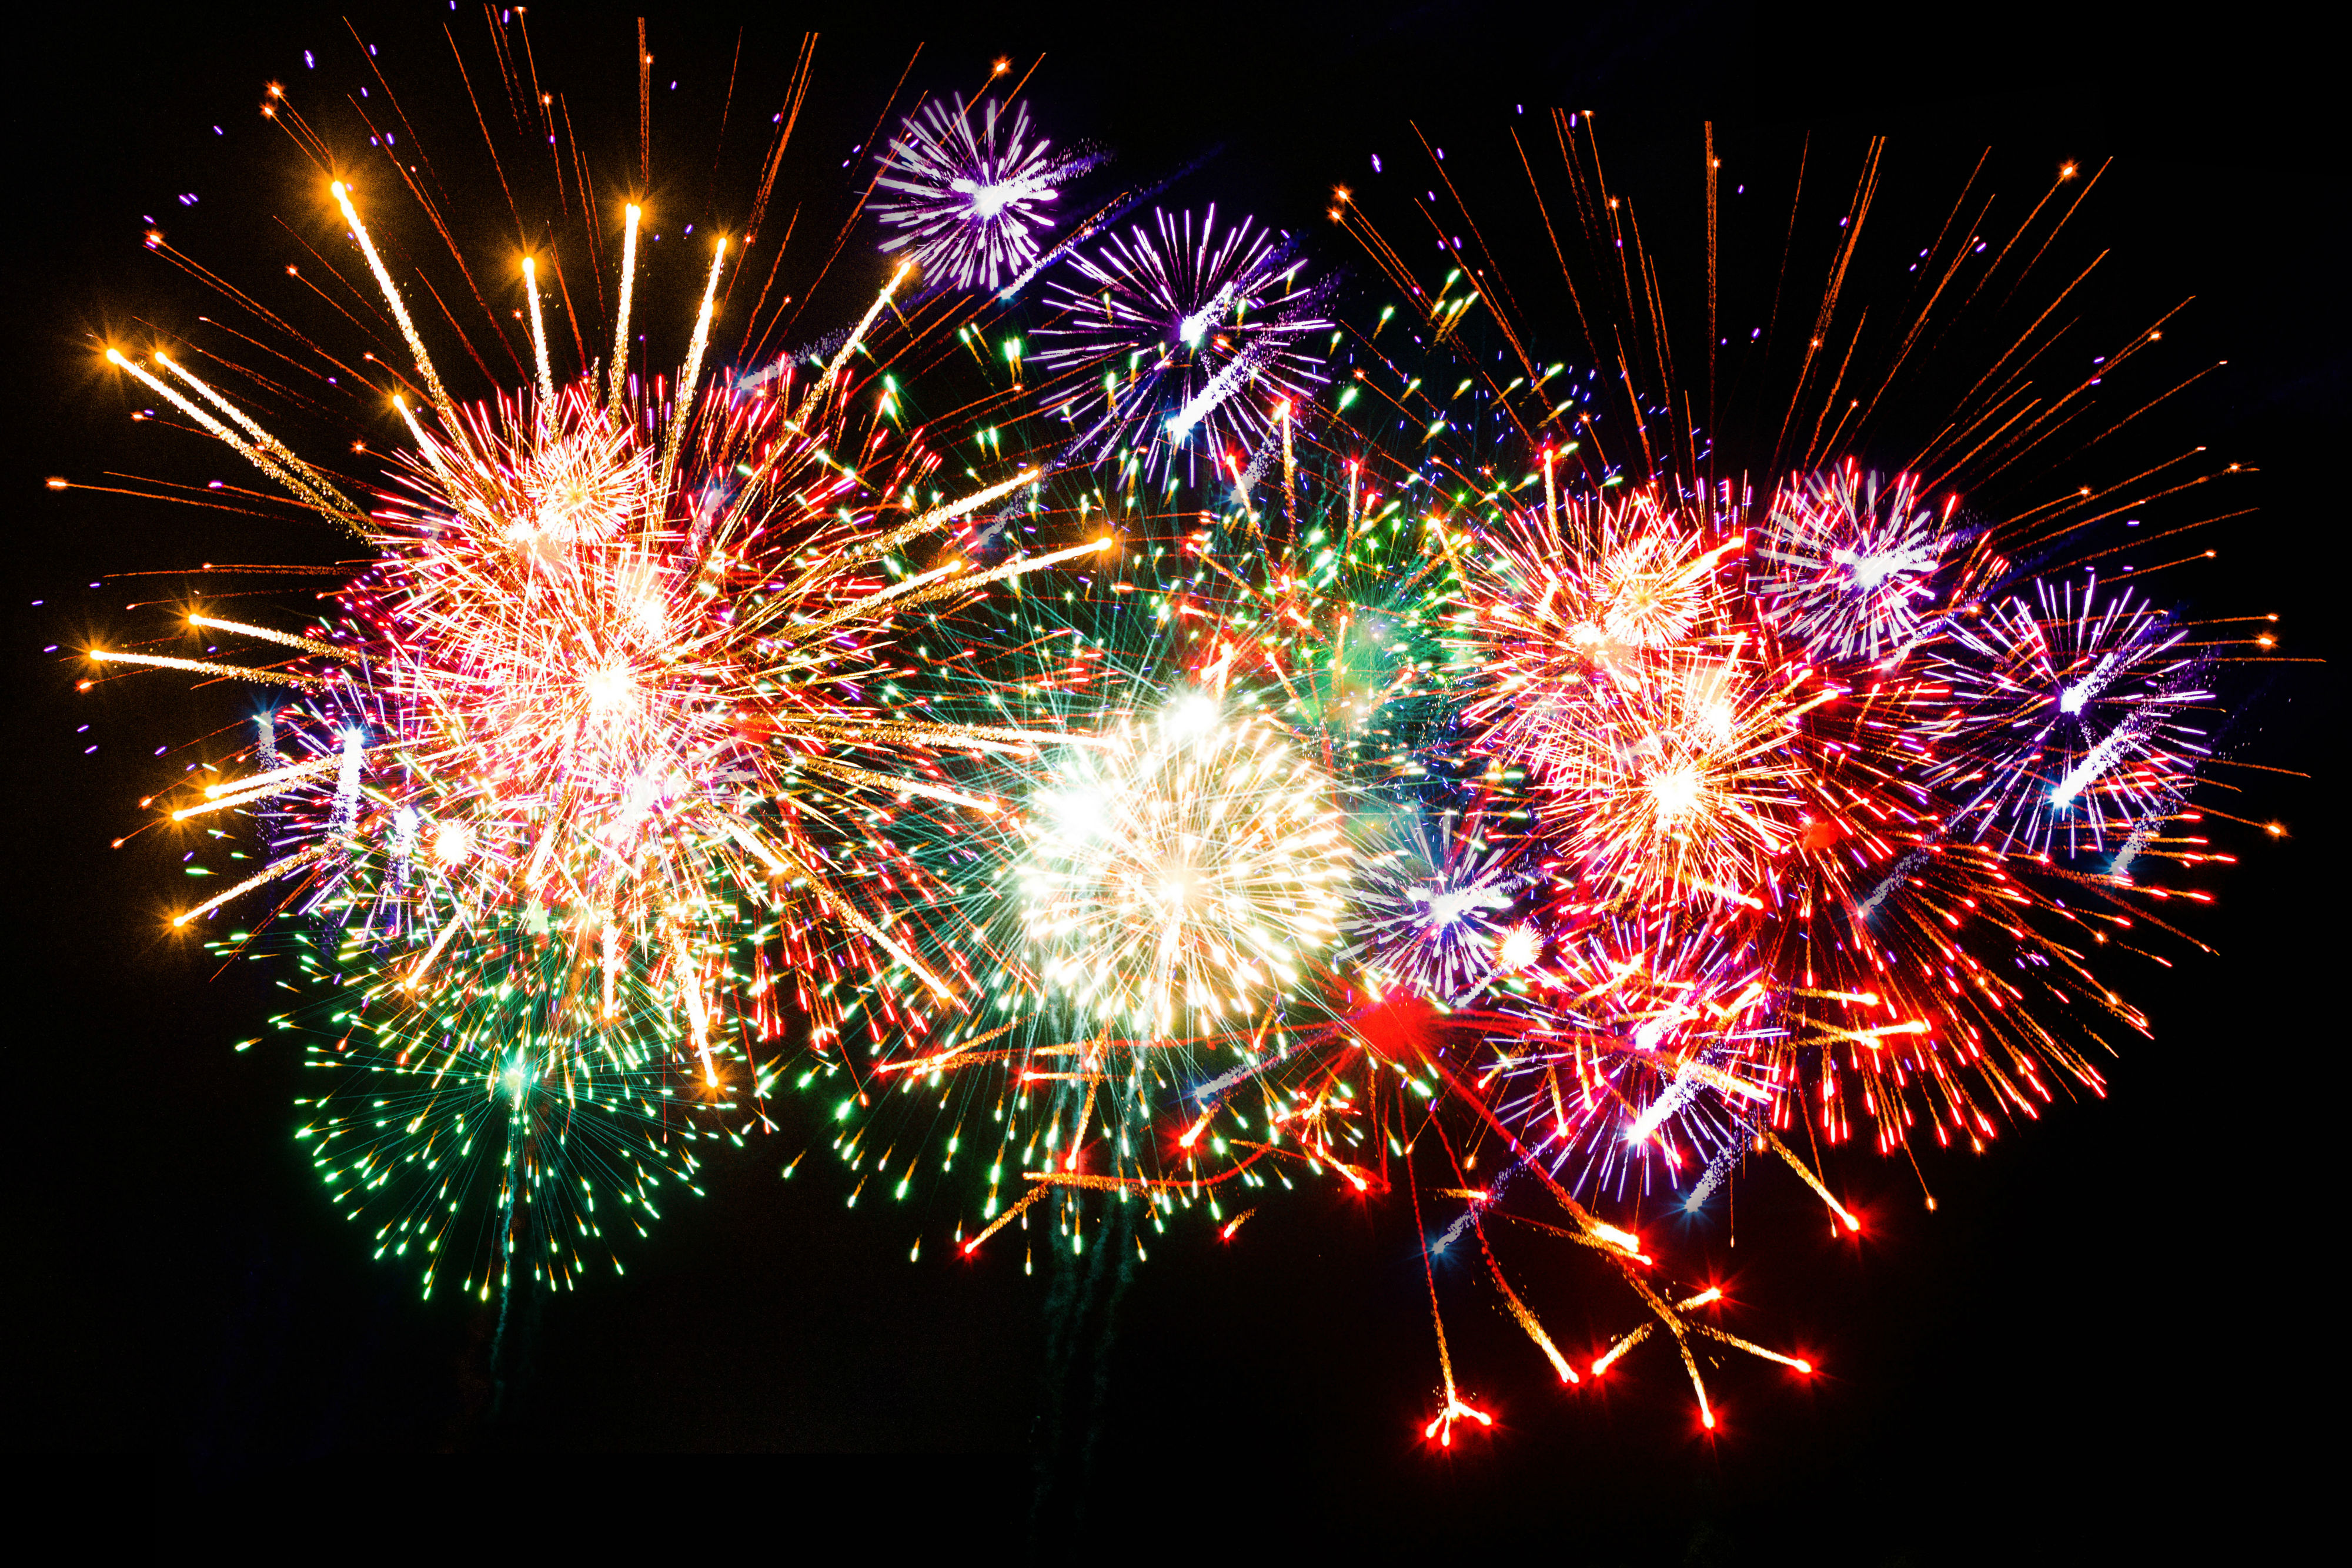 Fireworks in front of a black background - Fourth of july live wallpaper ...